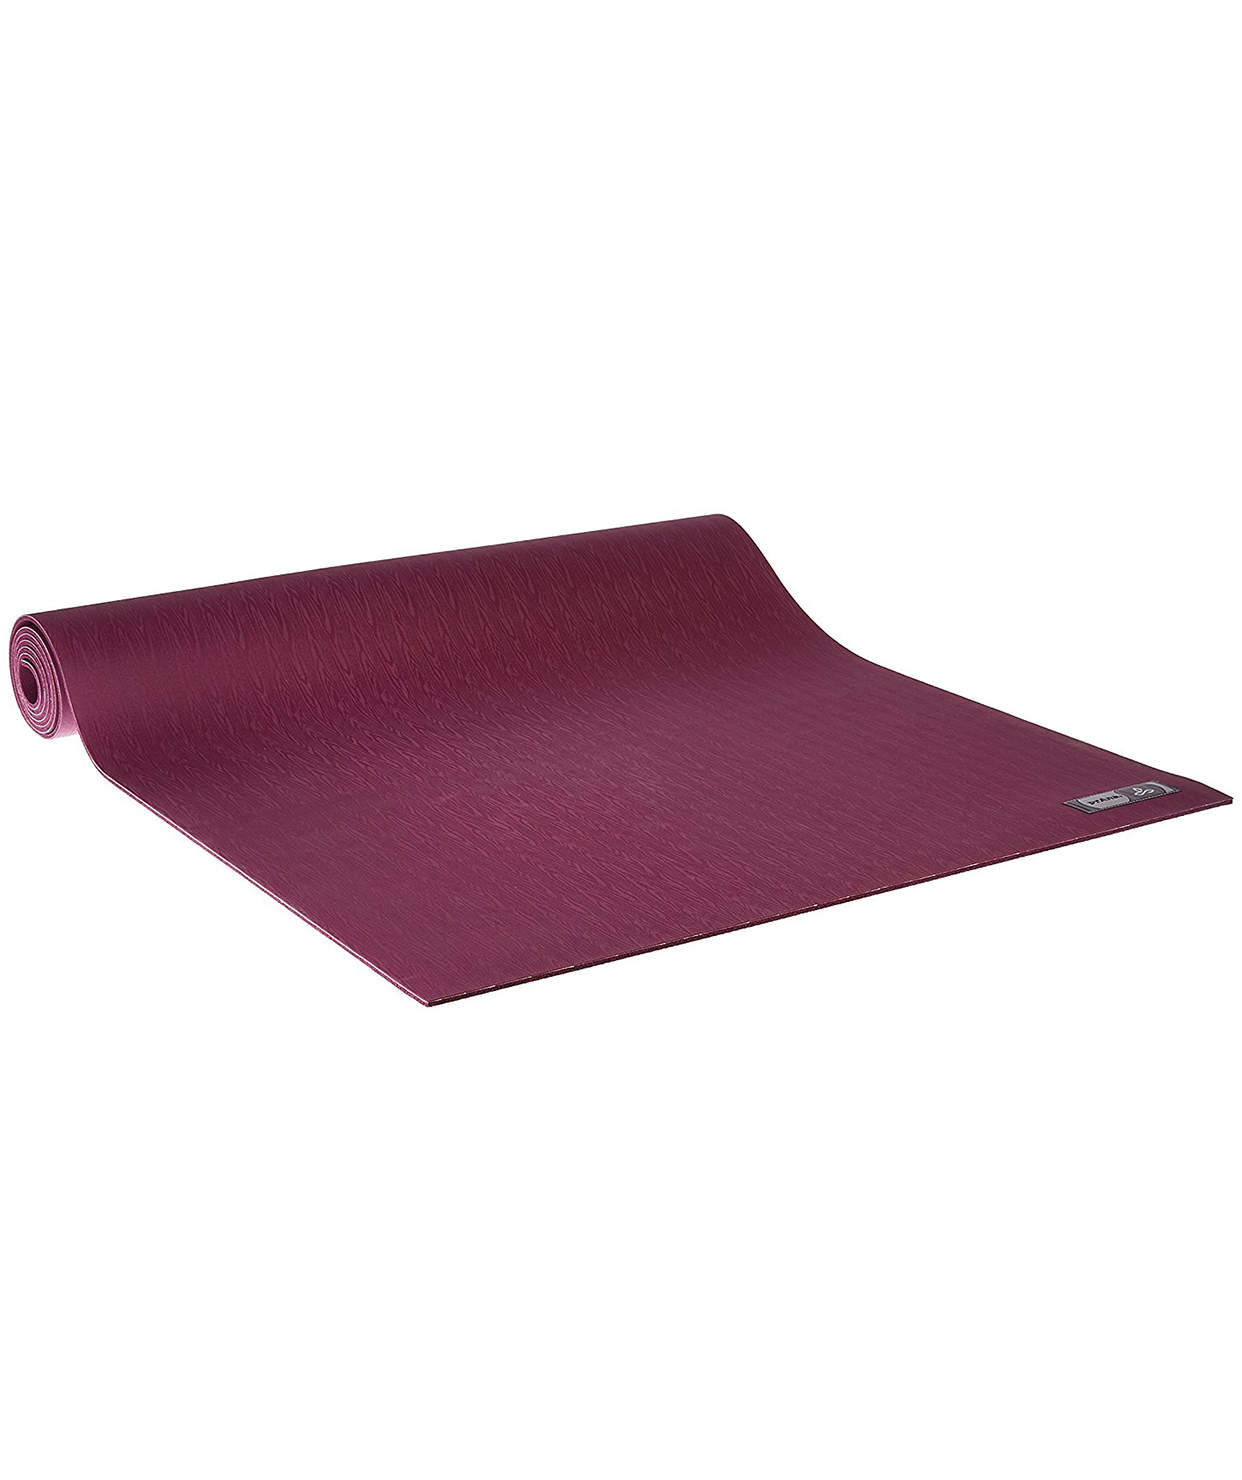 The 14-Year-Old Yoga Mat I'll Never Give Up